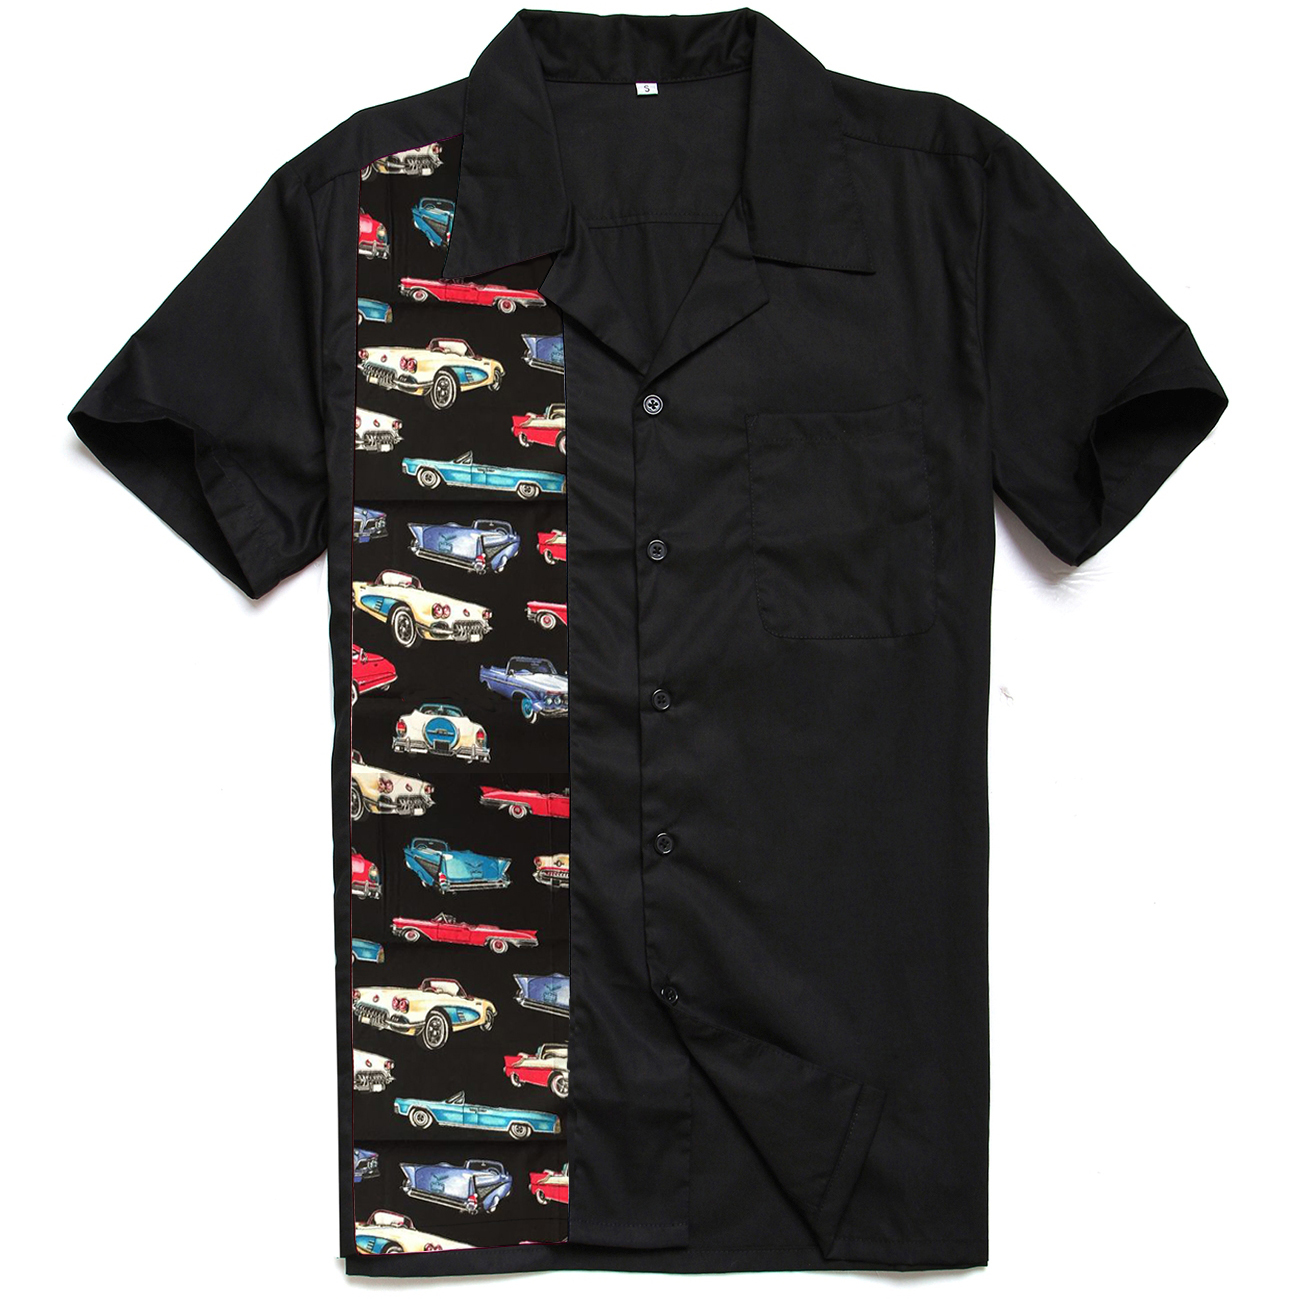 2 018 Men Fashion New Designs Classic Cars Printing Panel Casual Tops Cotton Rockabilly 40s 50s Vintage Work Shirts